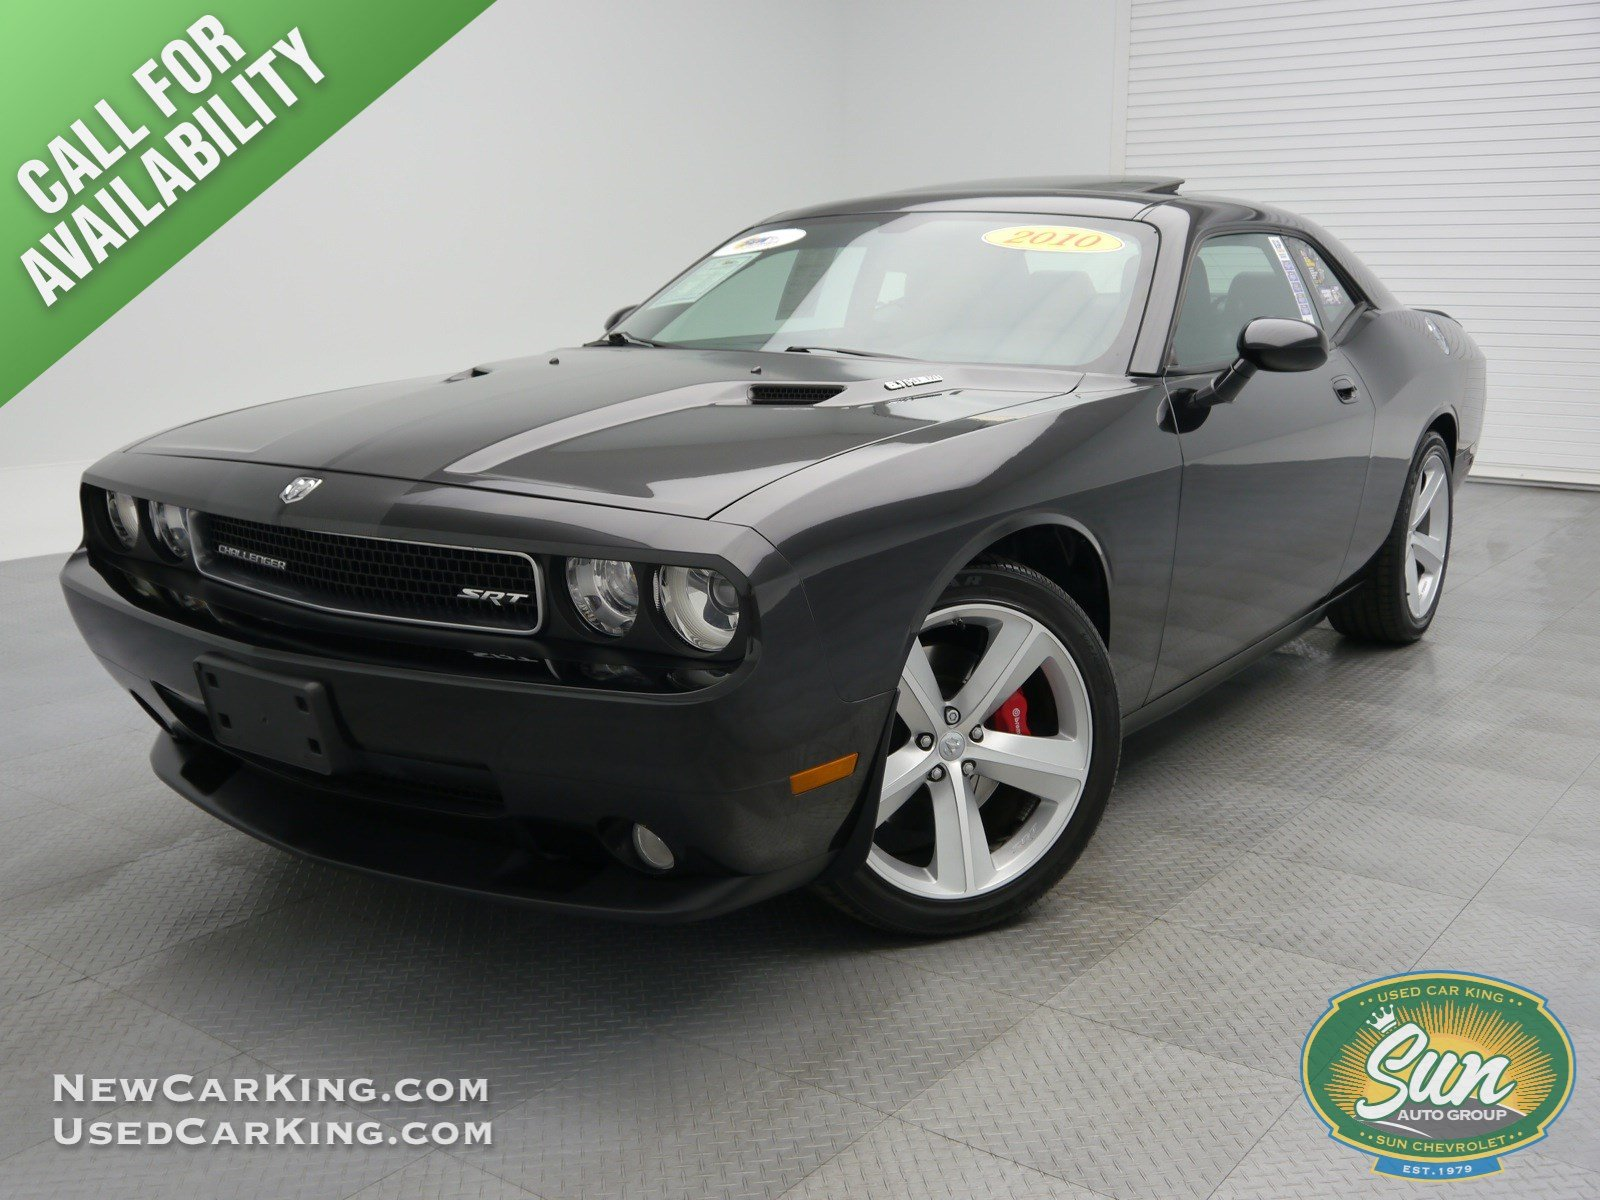 Pre Owned 2010 Dodge Challenger SRT8